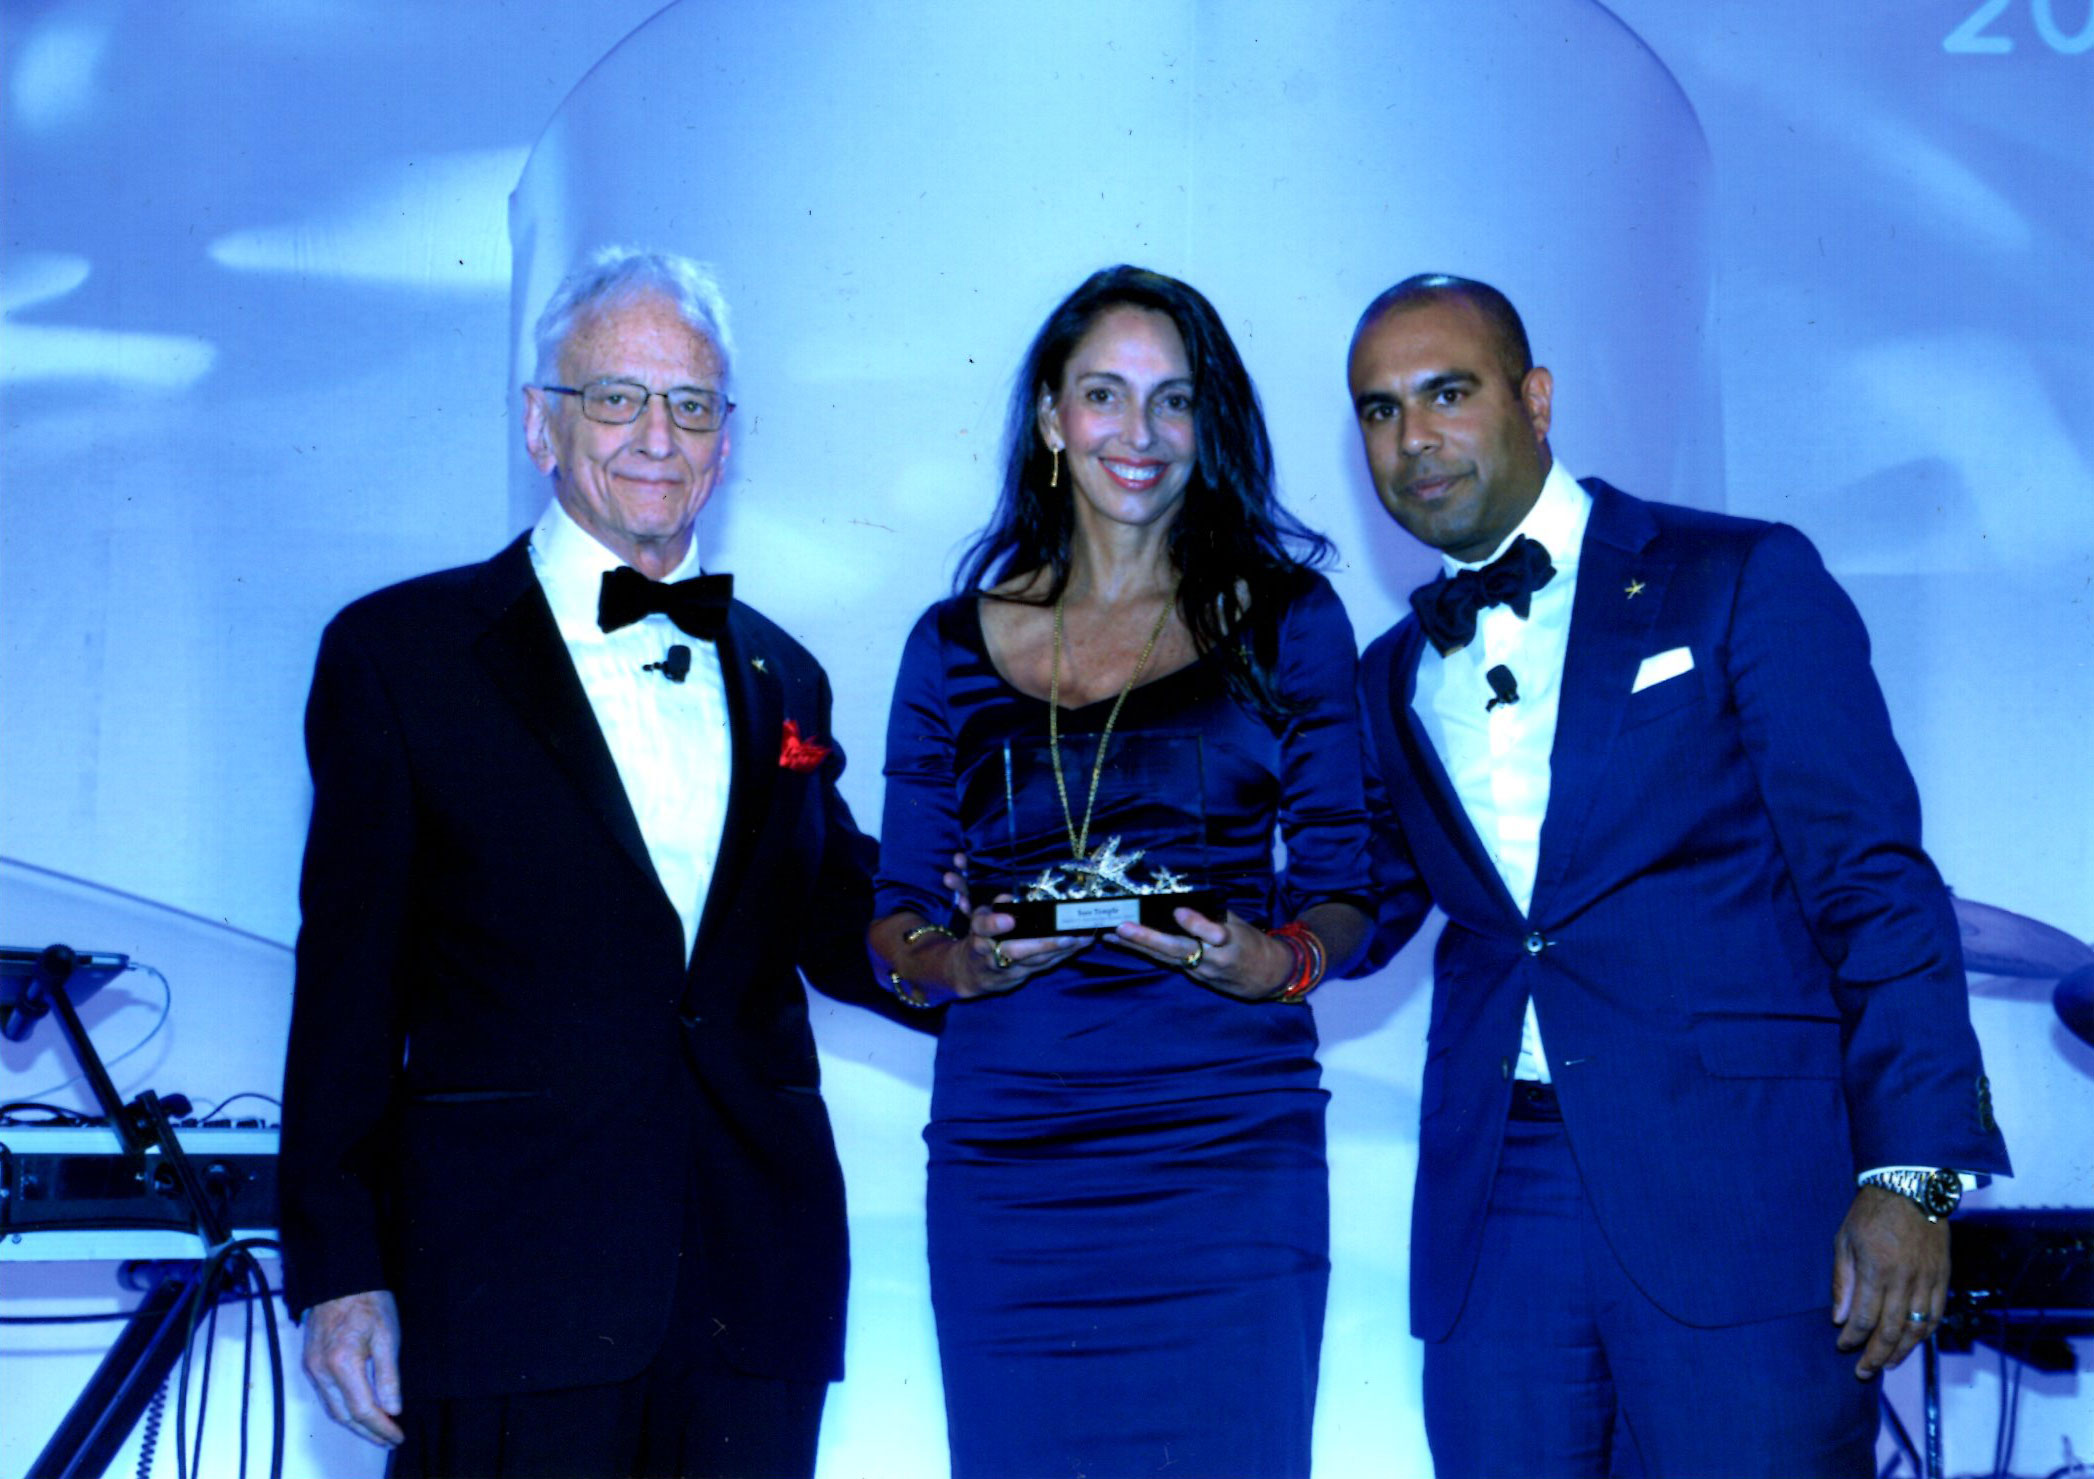 INES TEMPLE RECEIVED THE LHH STAR THROWER AWARD FOR HER CONTRIBUTIONS TO THE COMMUNITY